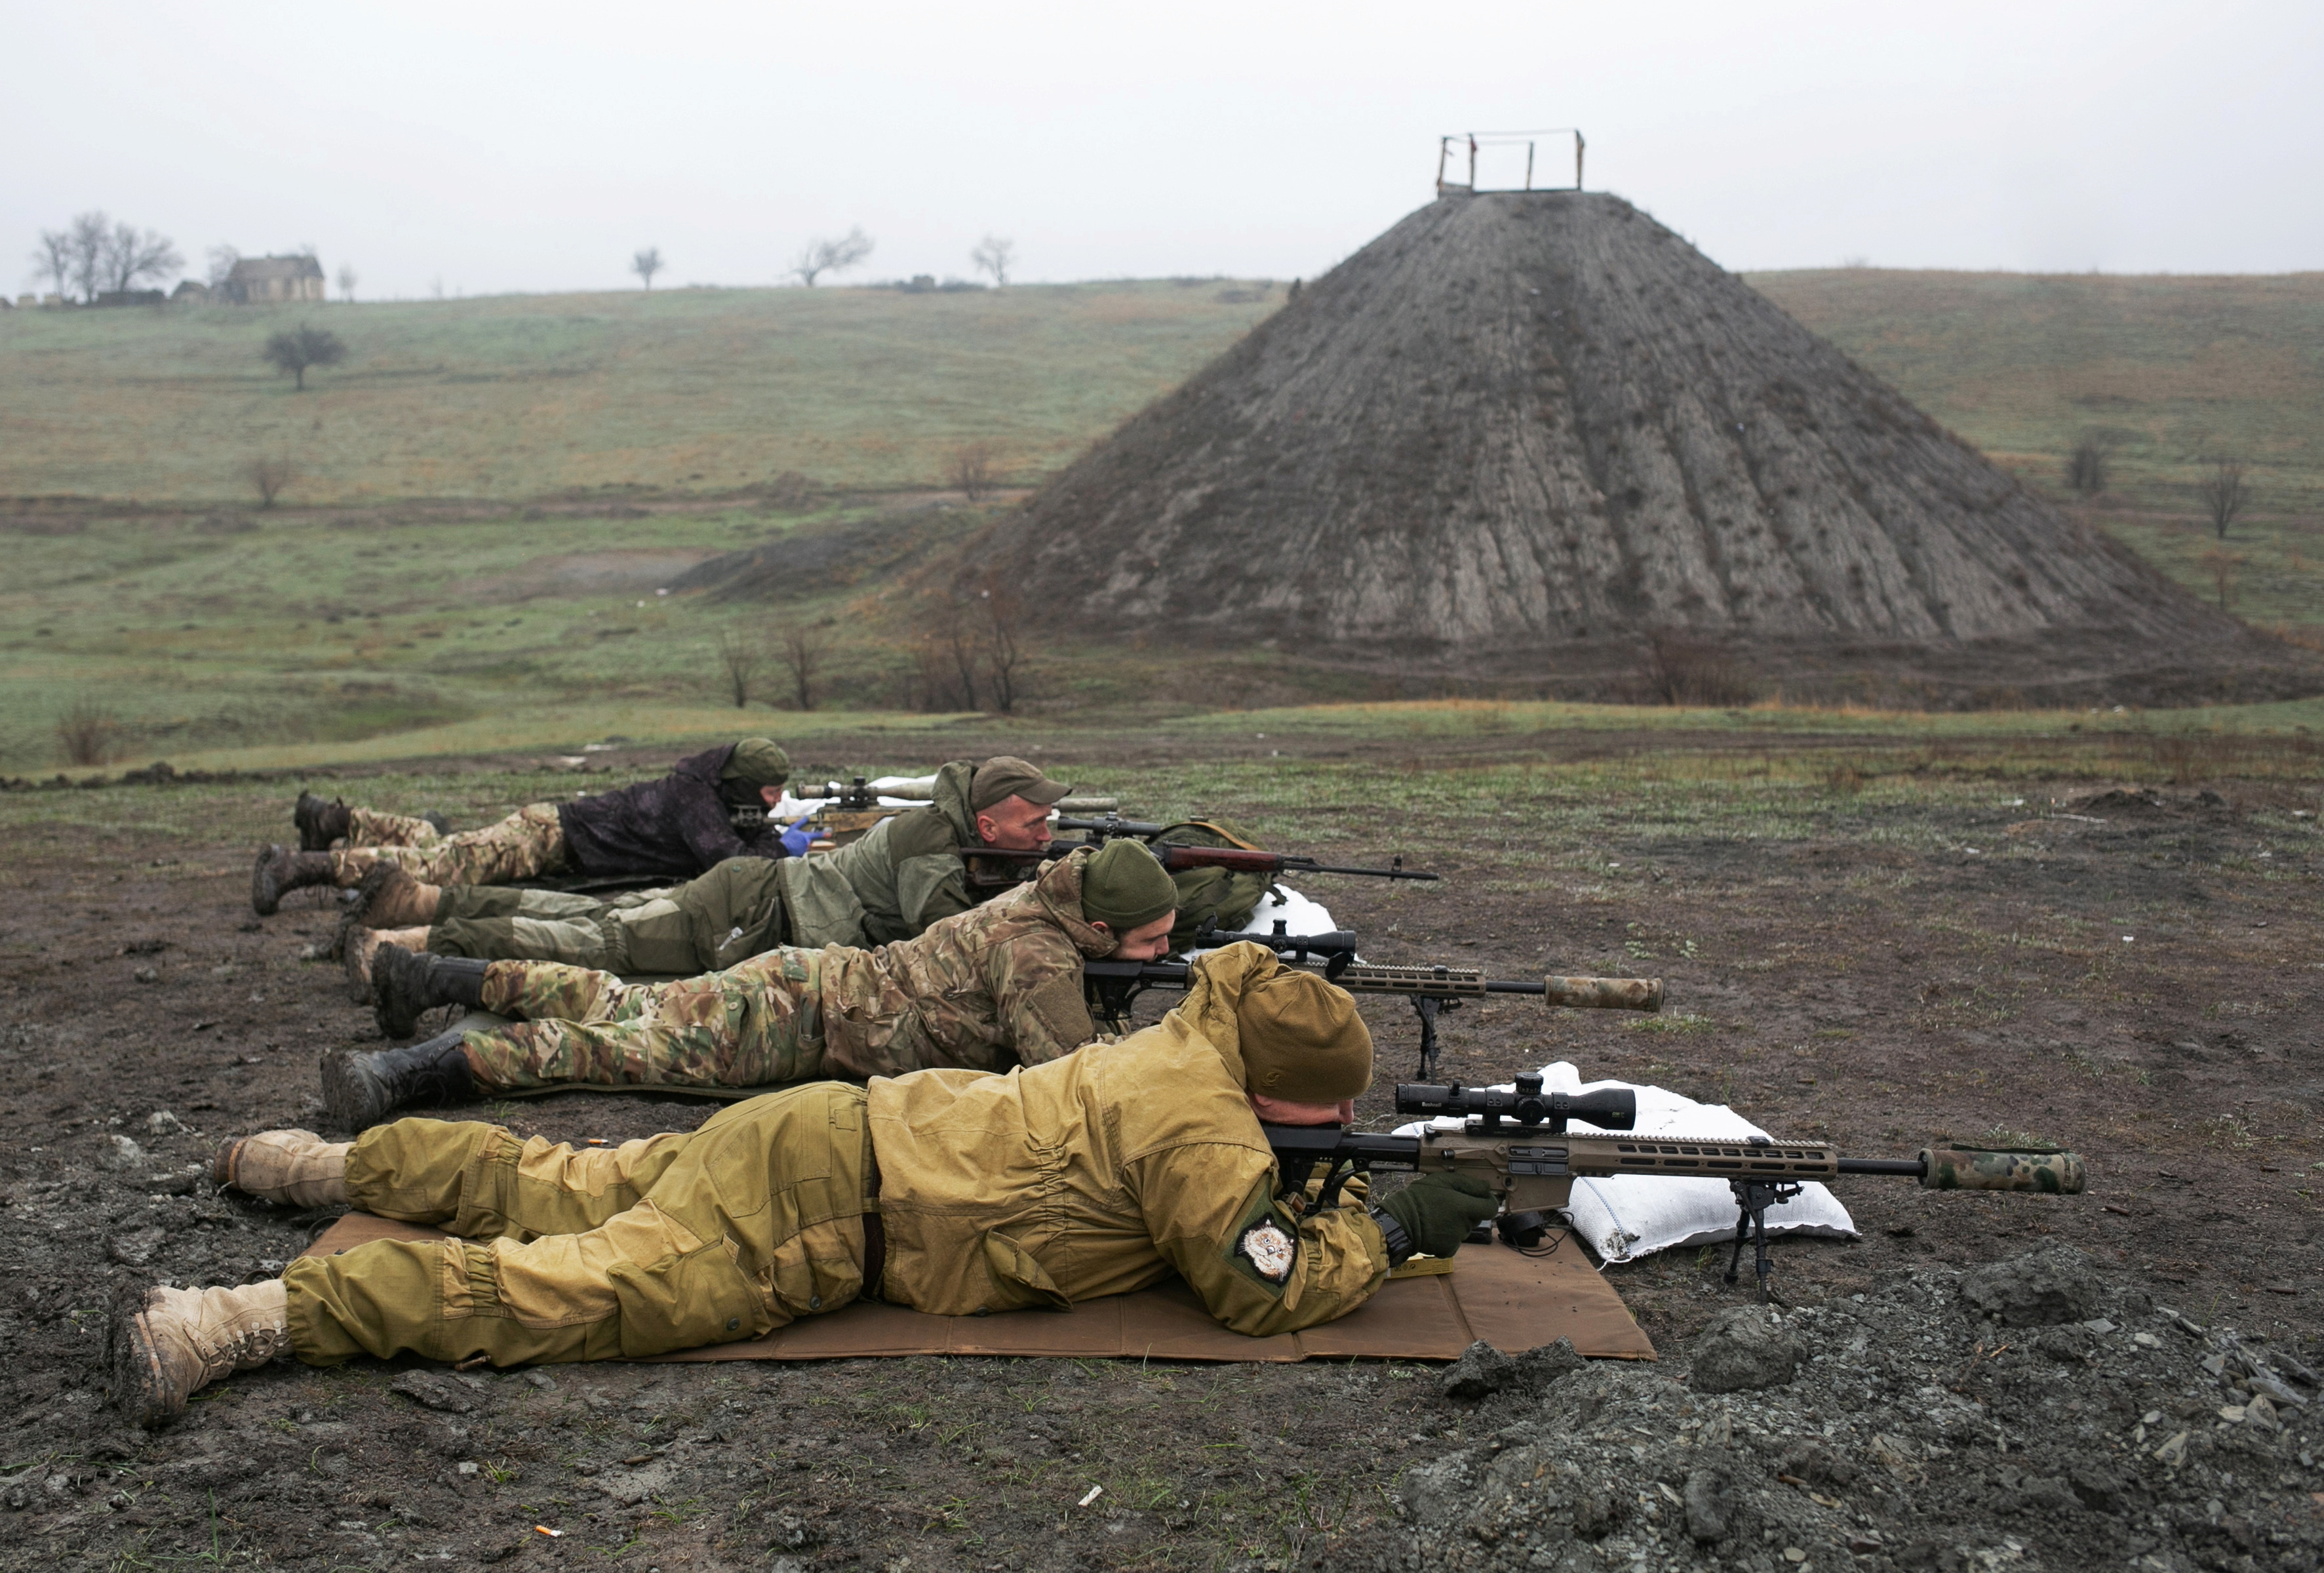 Snipers of the Ukrainian armed forces aim their rifles during training at a firing range near the town of Marinka inDonetsk region, Ukraine April 13, 2021. REUTERS/Anastasia Vlasova